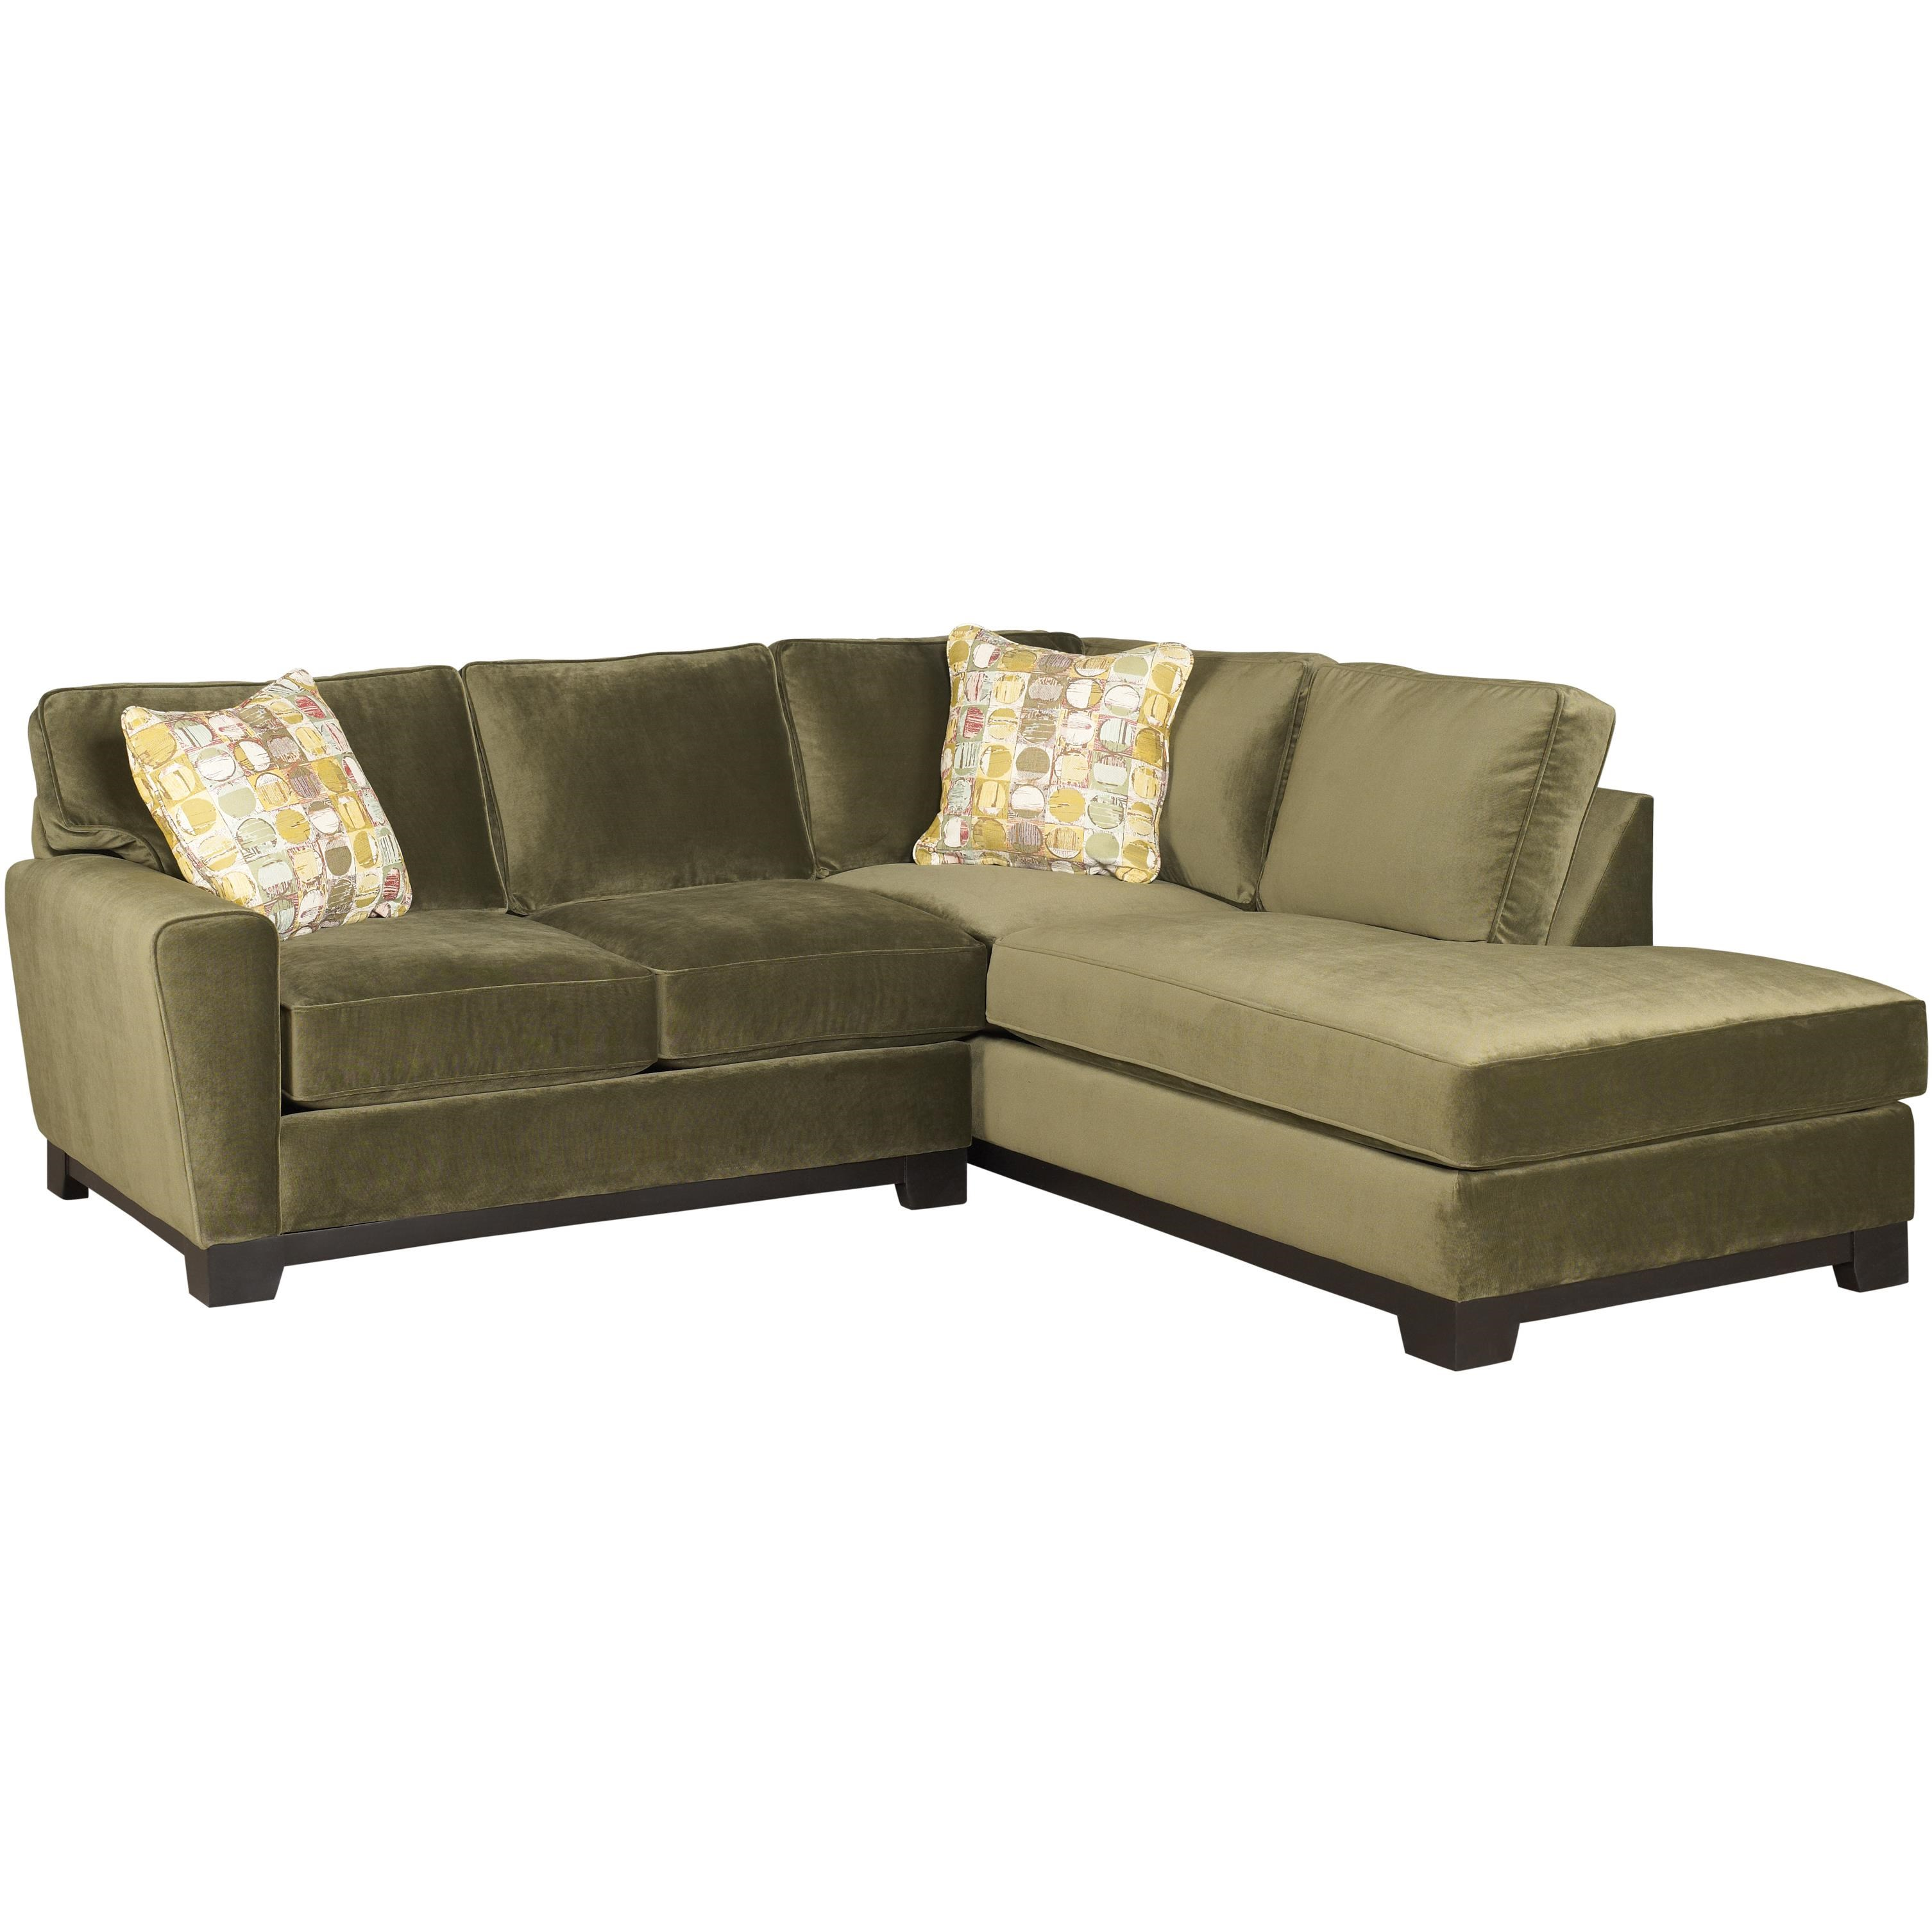 Jonathan Louis Taurus Casual Sectional With Block Feet